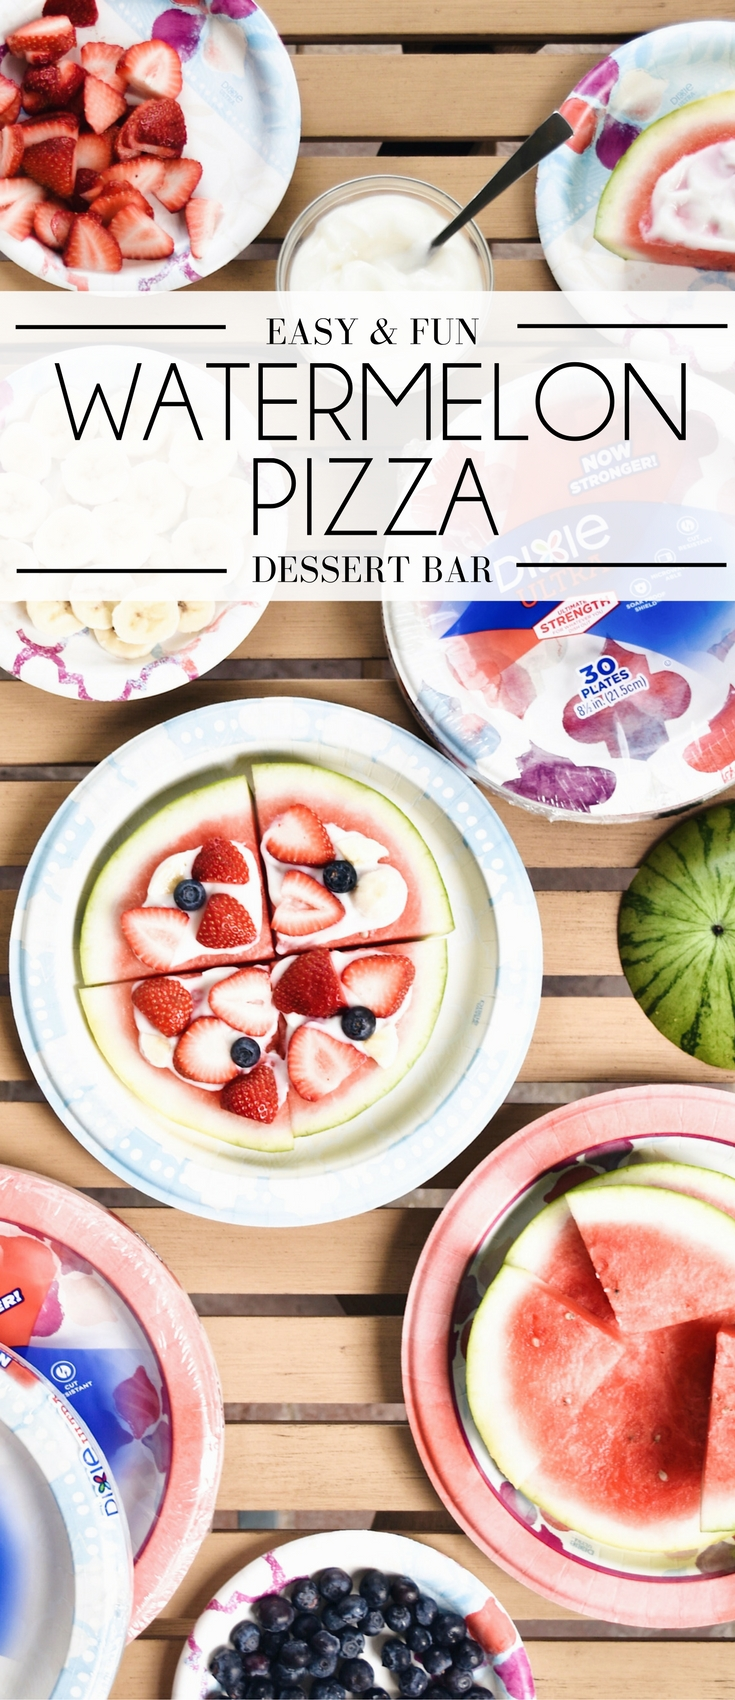 watermelon pizza bar - let the kids make watermelon pizza with fresh berries and vanilla yogurt. the perfect healthy dessert for summer nights!